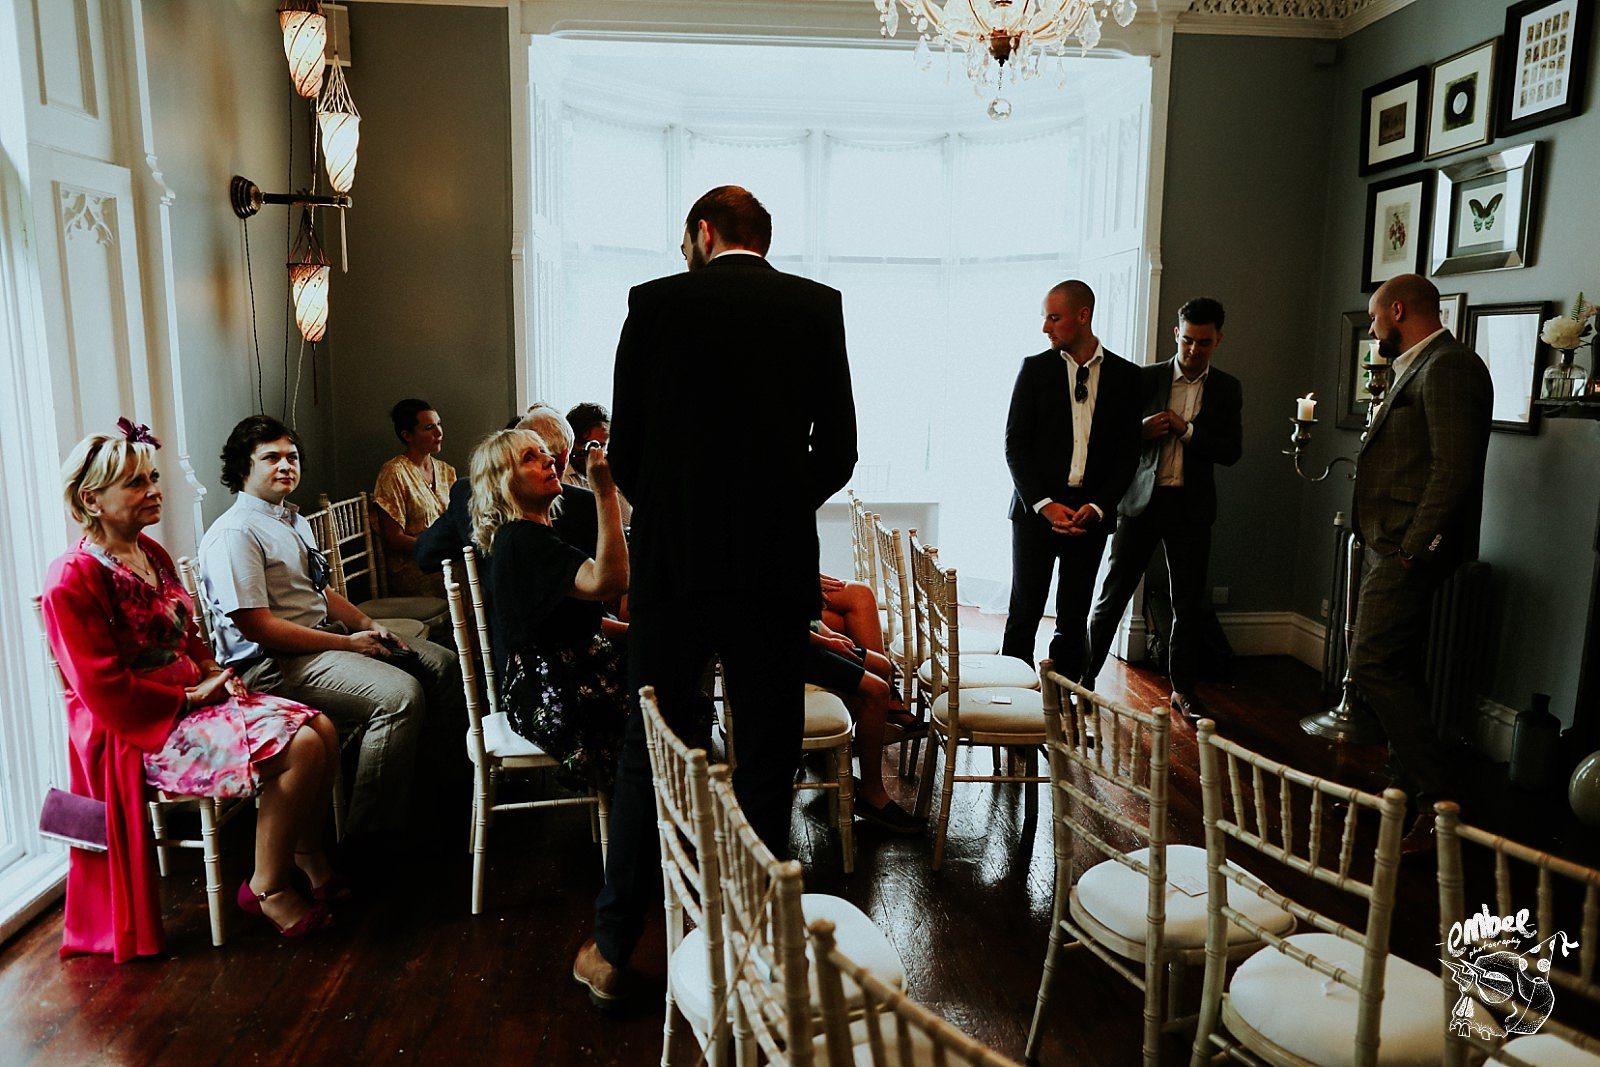 guests in ceremony room